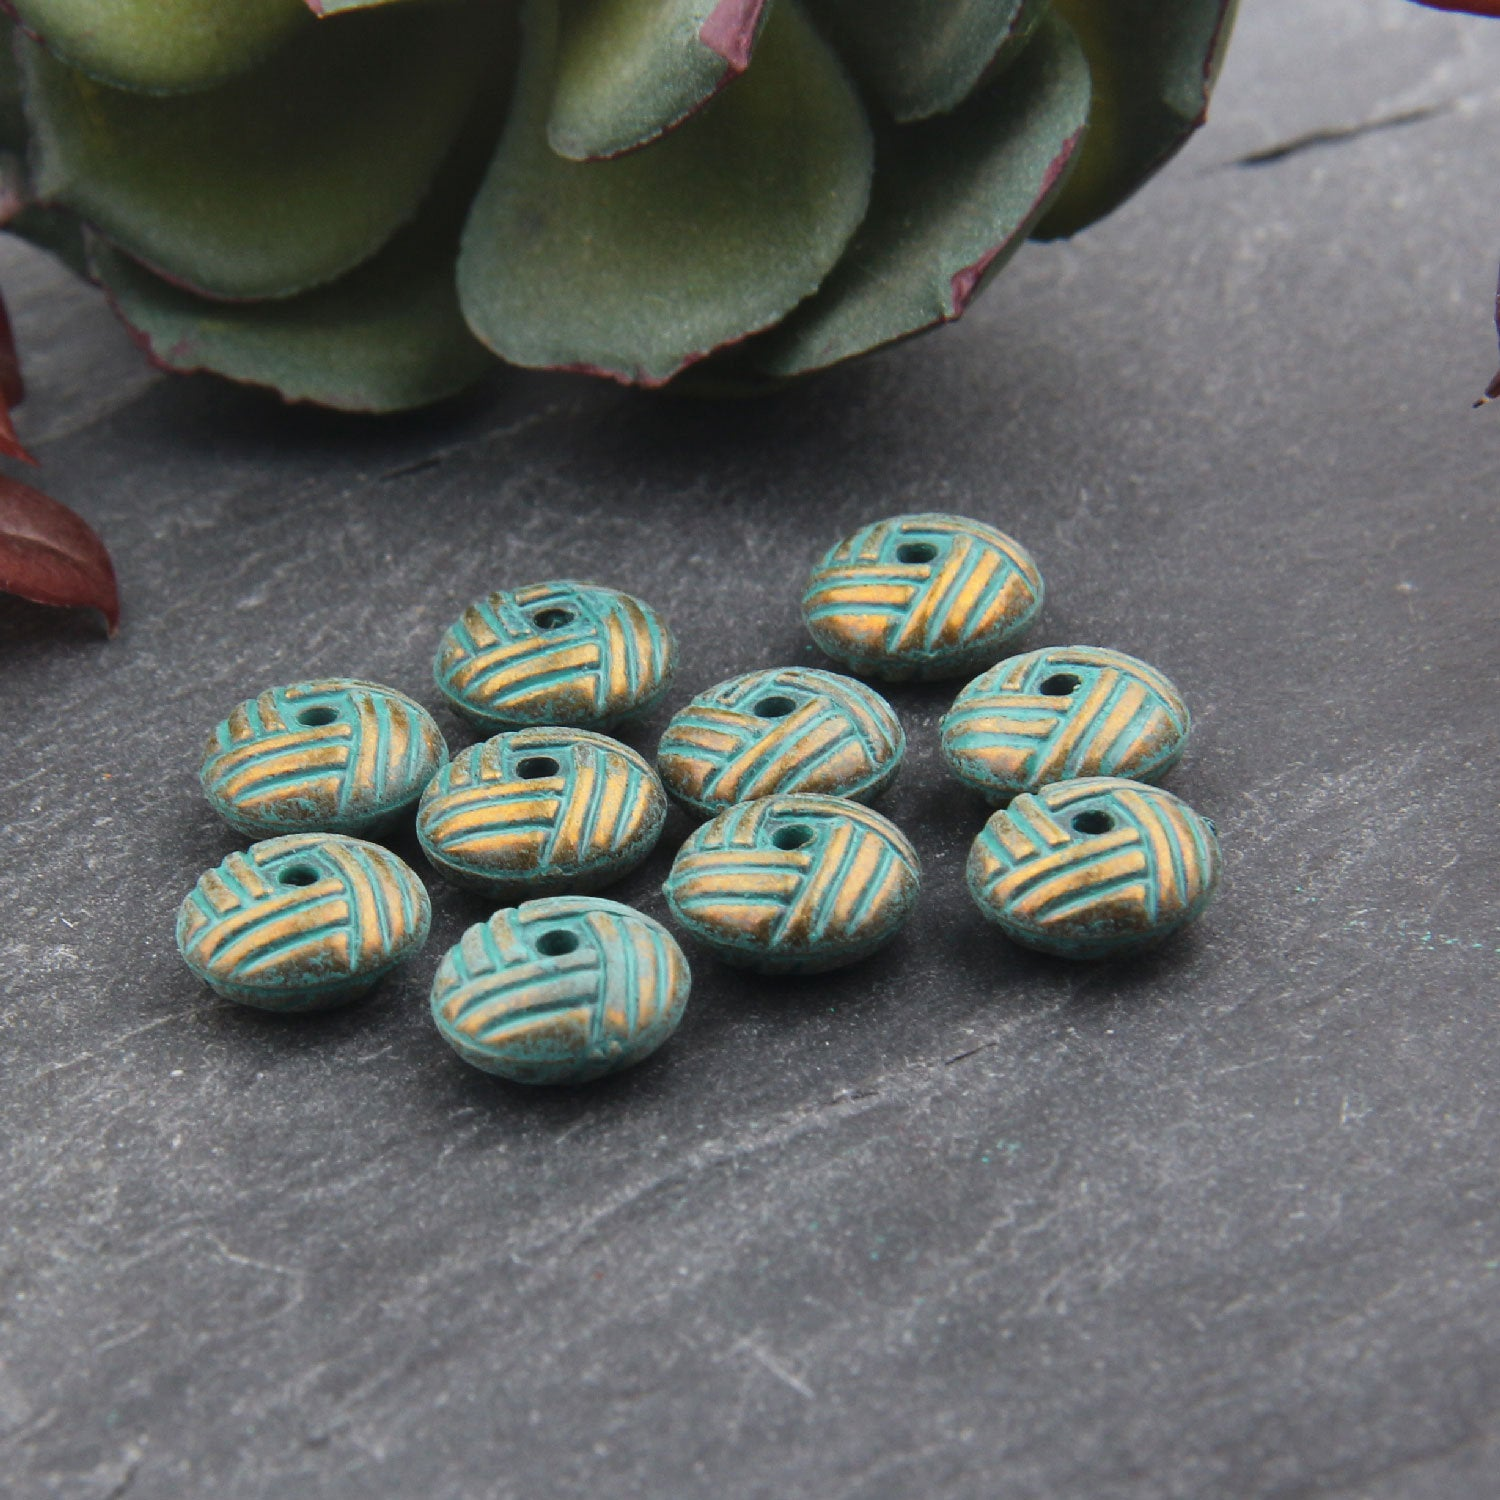 SALE, 10 Acrylic Verdigris Patina Bead Sliders, Plastic Patina Beads, Acrylic Beads, Jewelry Supplies, 10 mm // ACR-012